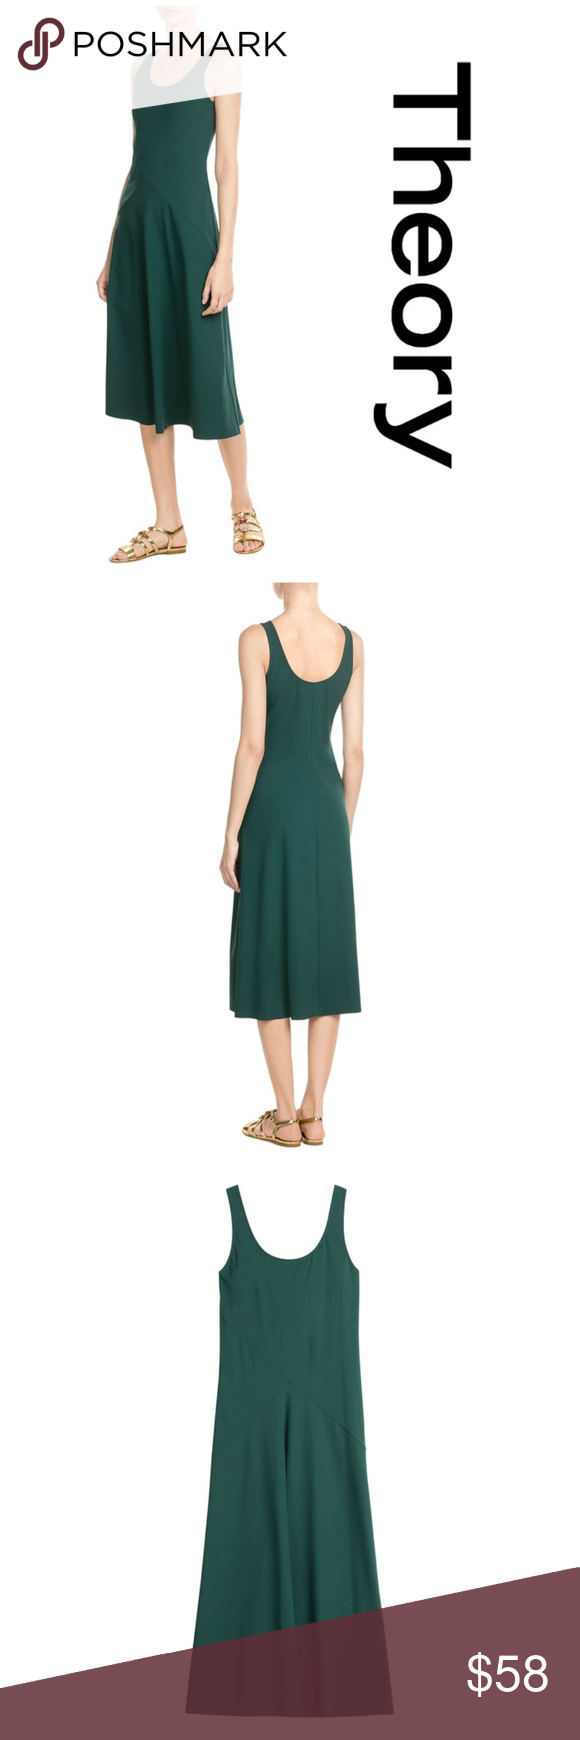 Theory monola fine knit midi dress dark green xss euc theory monola